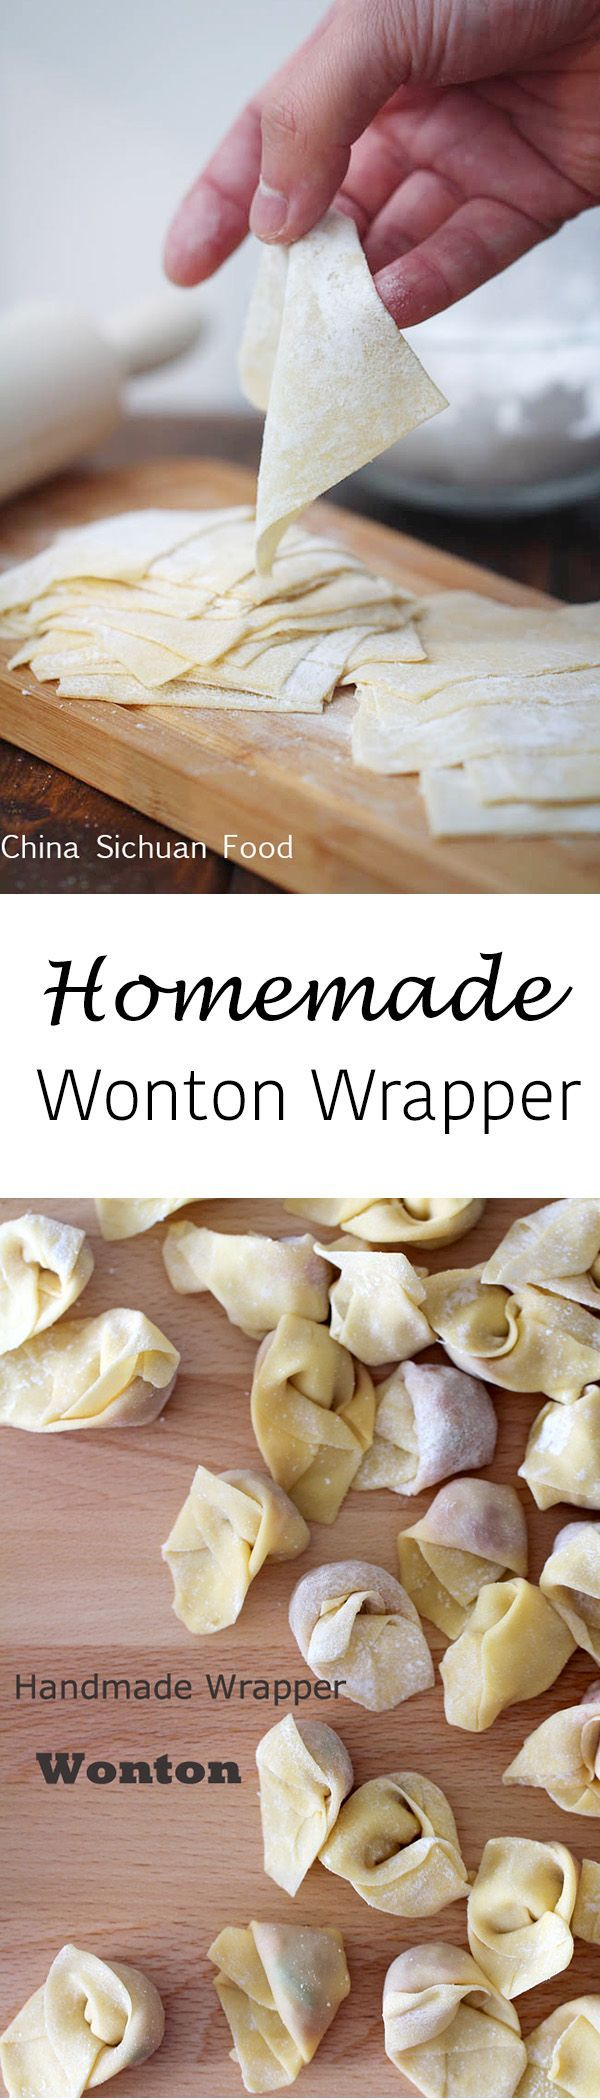 Wonton Wrappers Recipe Without Egg | Chekwiki.co